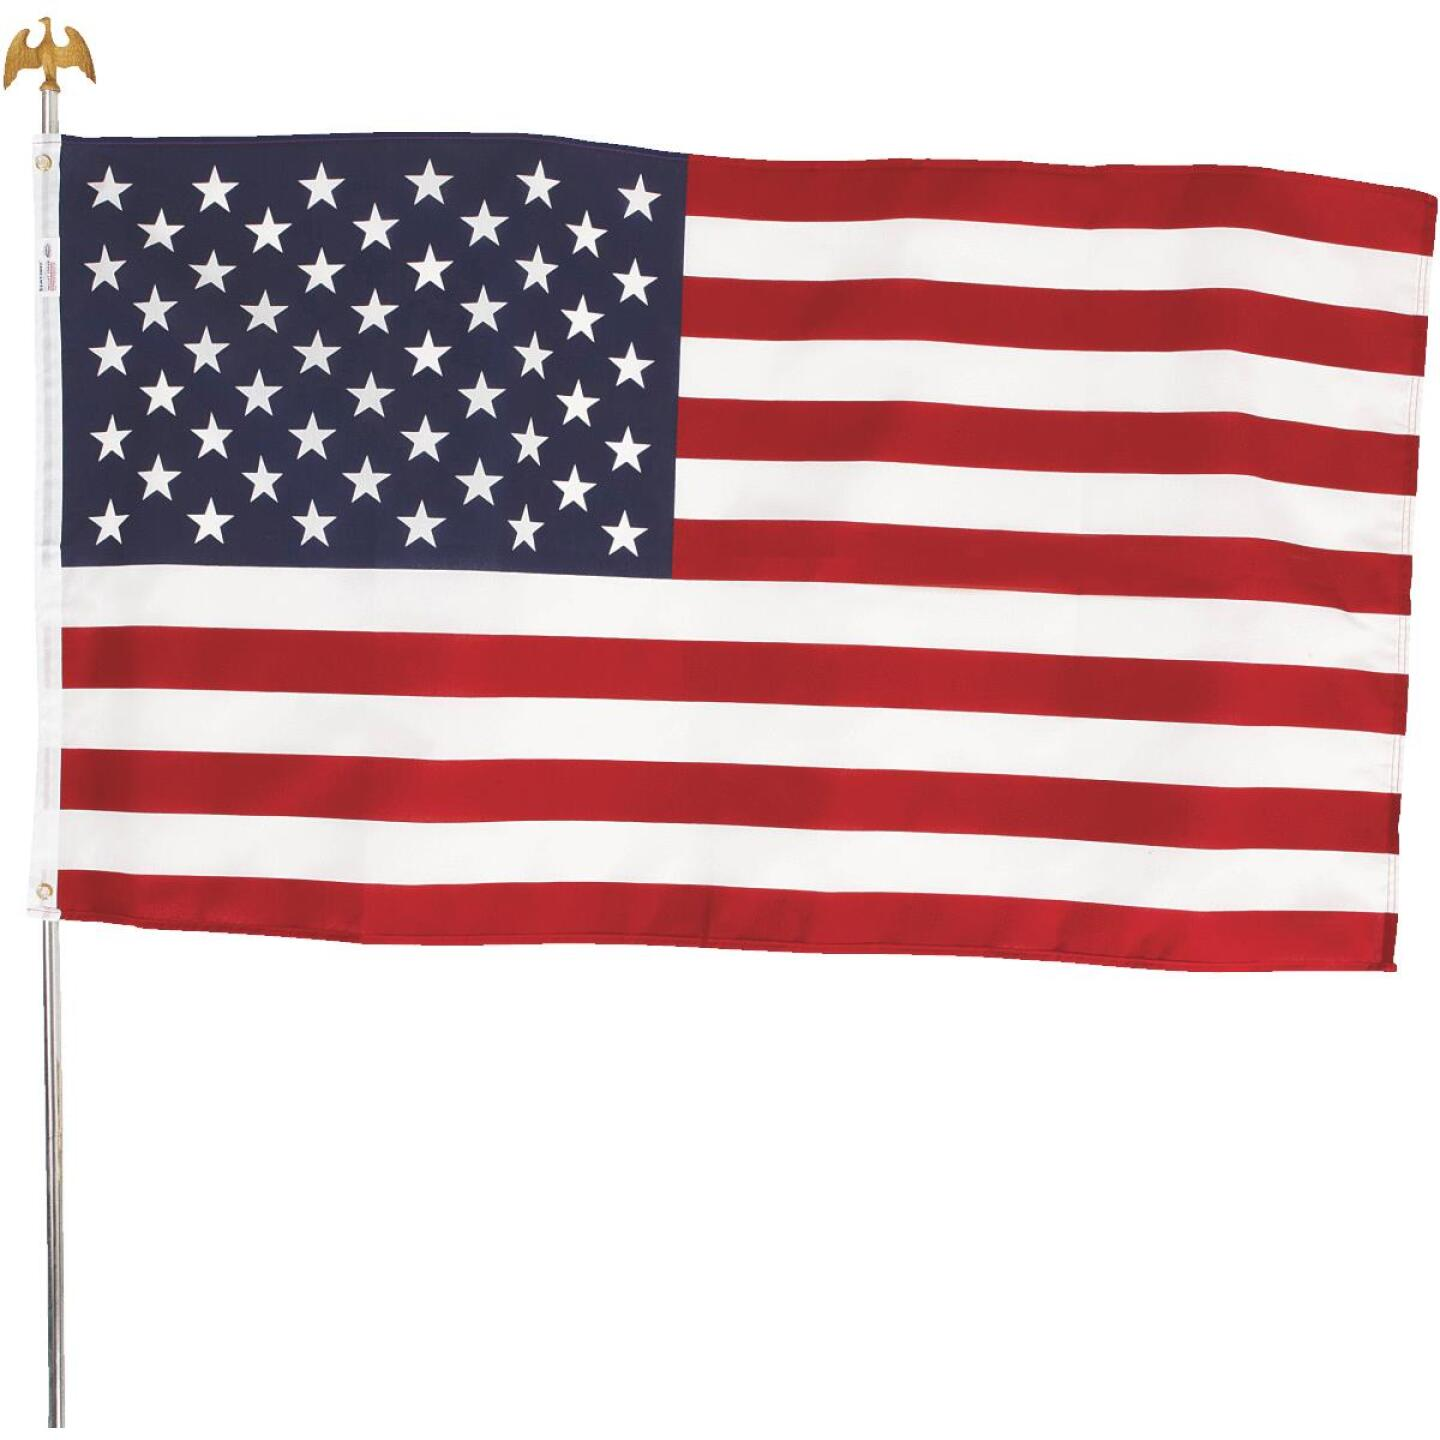 Valley Forge 3 Ft. x 5 Ft. Polycotton American Flag & 6 Ft. Pole Kit Image 5